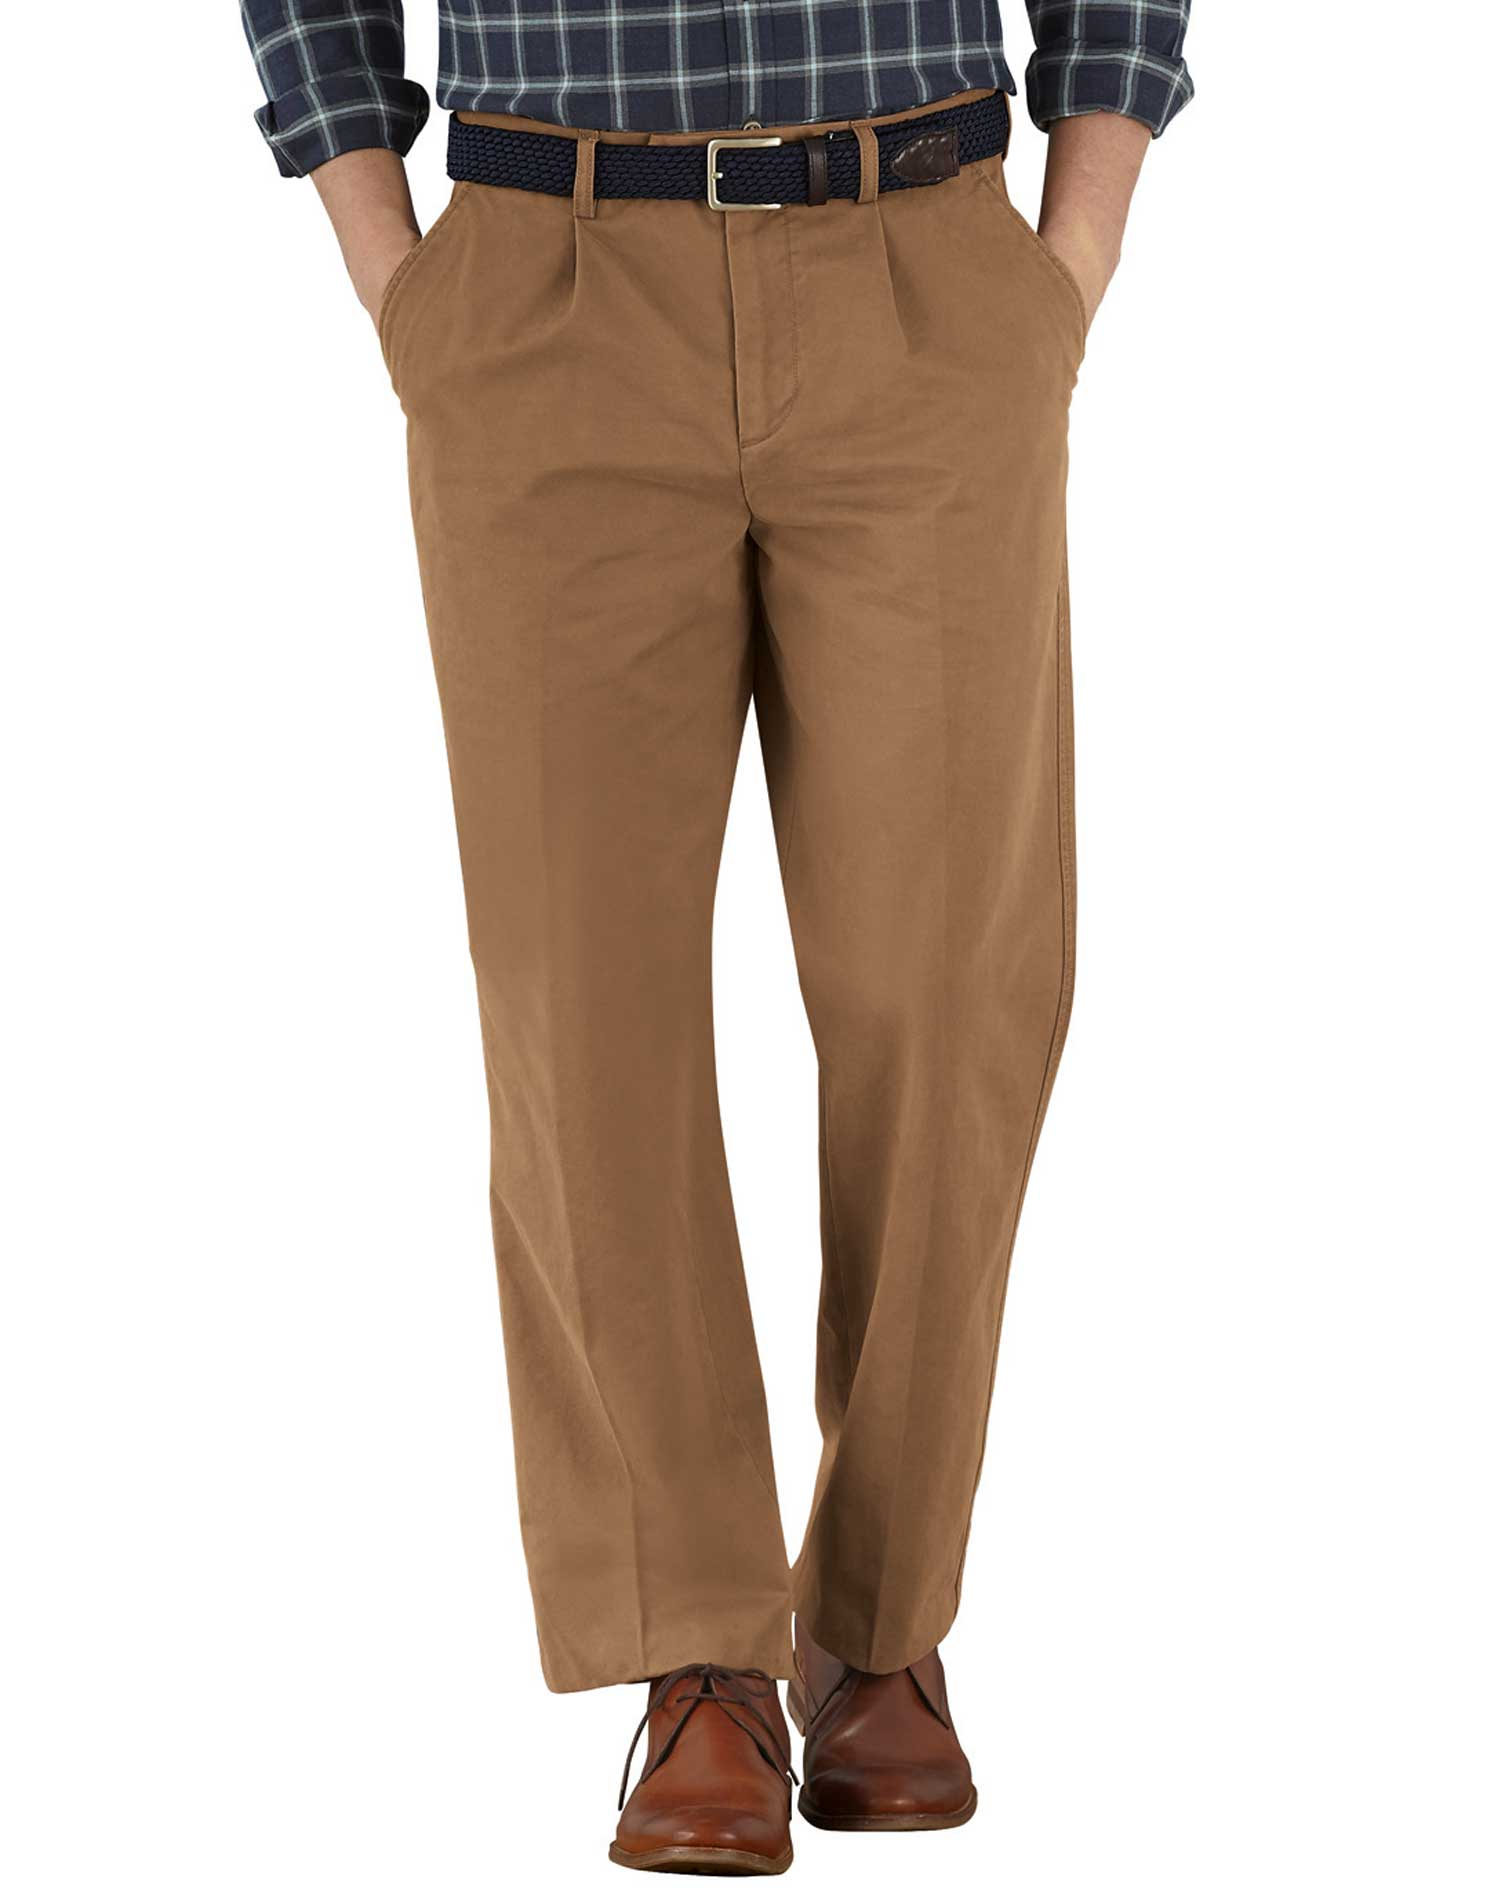 Camel Classic Fit Single Pleat Cotton Chino Trousers Size W36 L34 by Charles Tyrwhitt